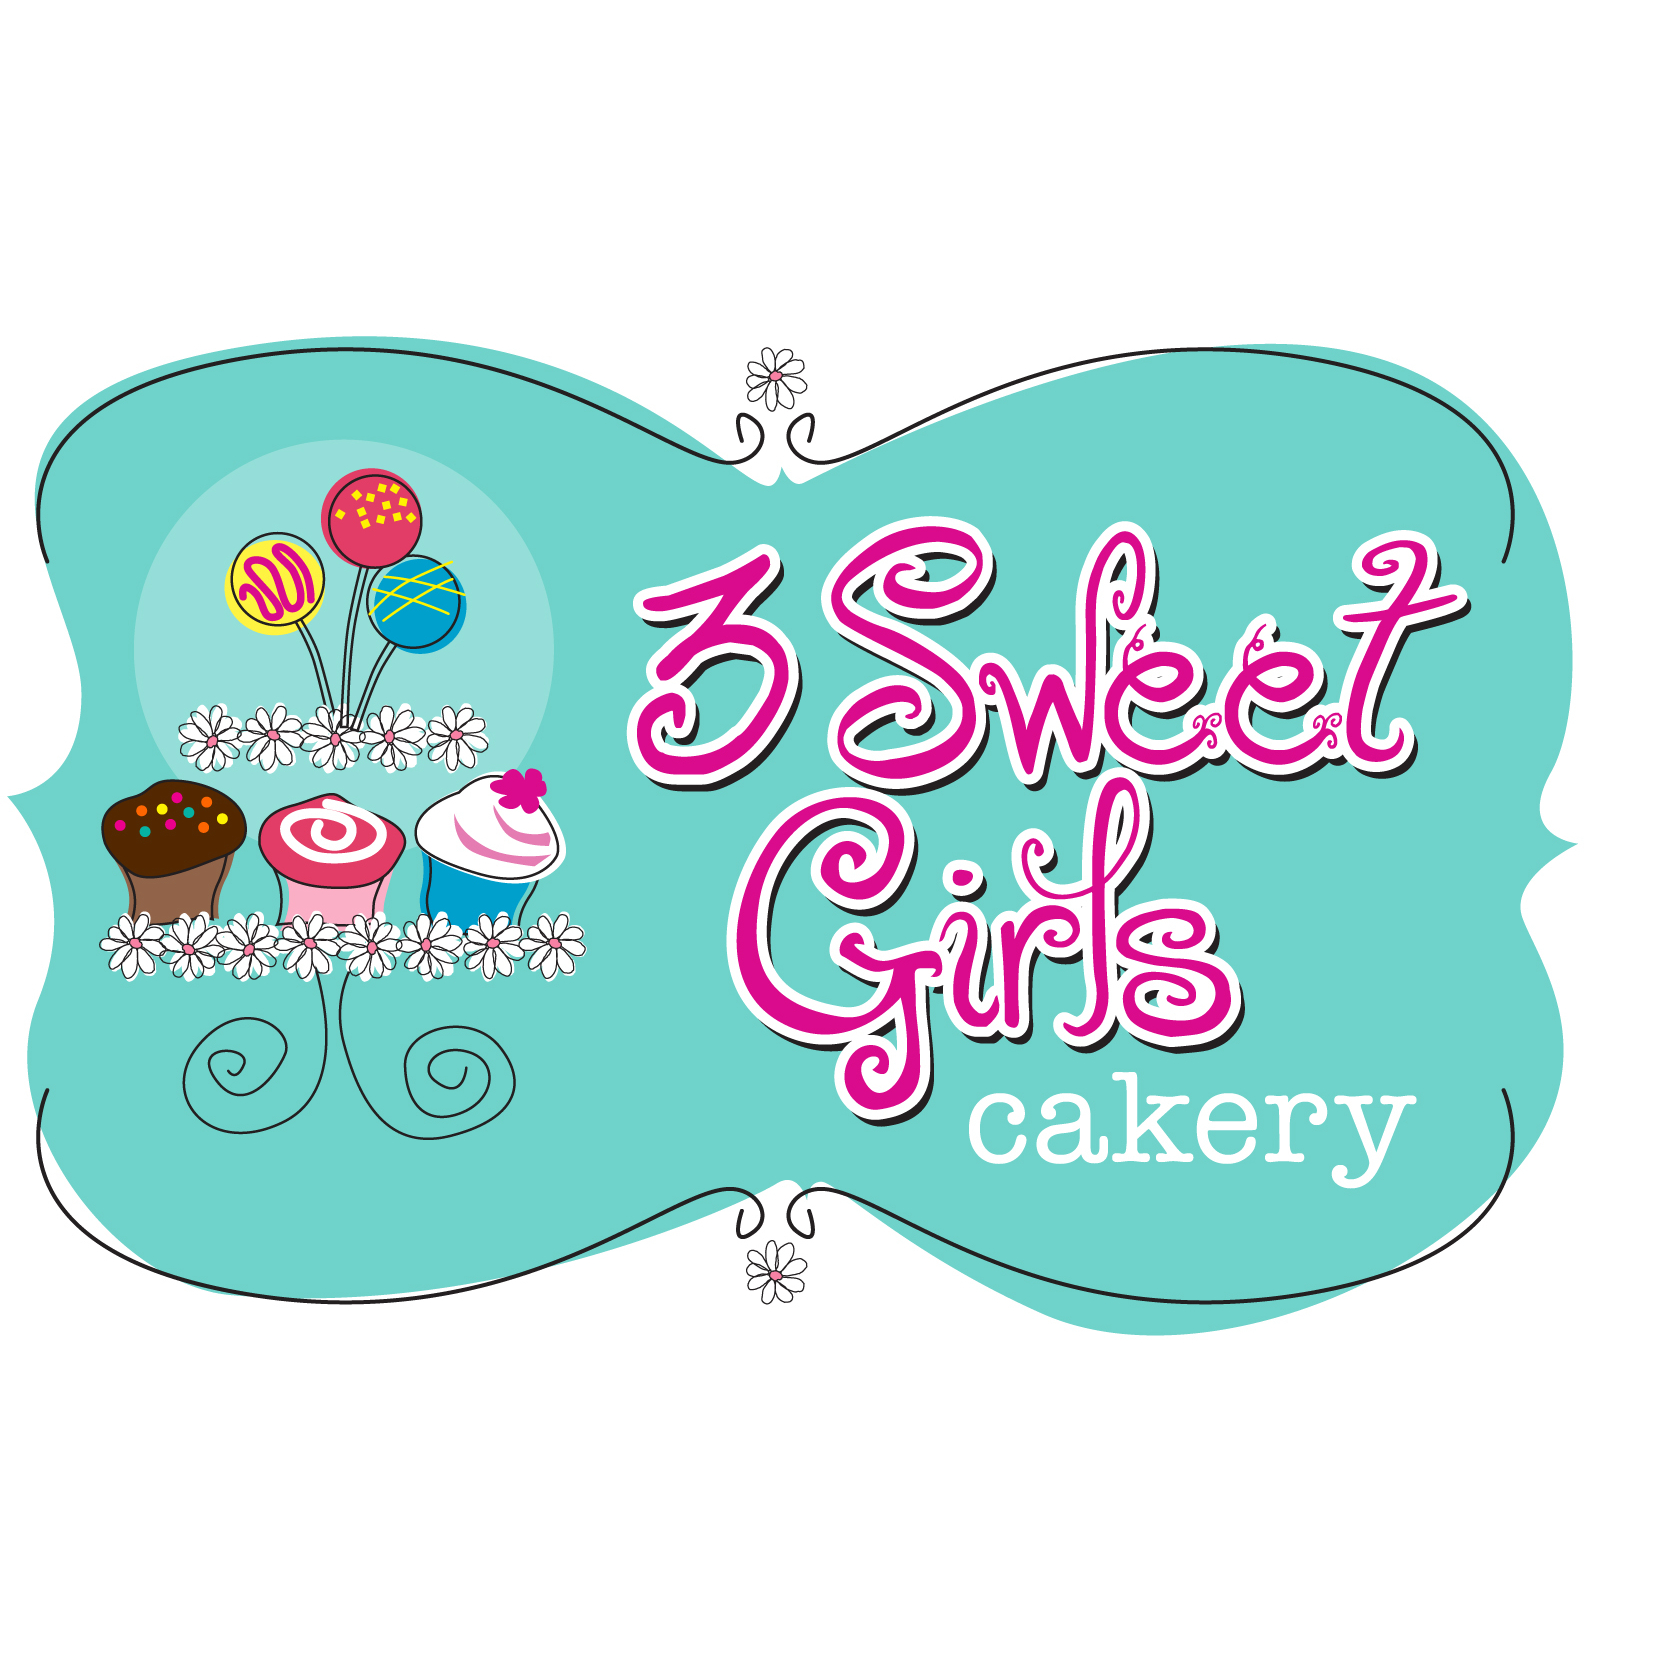 3 Sweet Girls Cakery